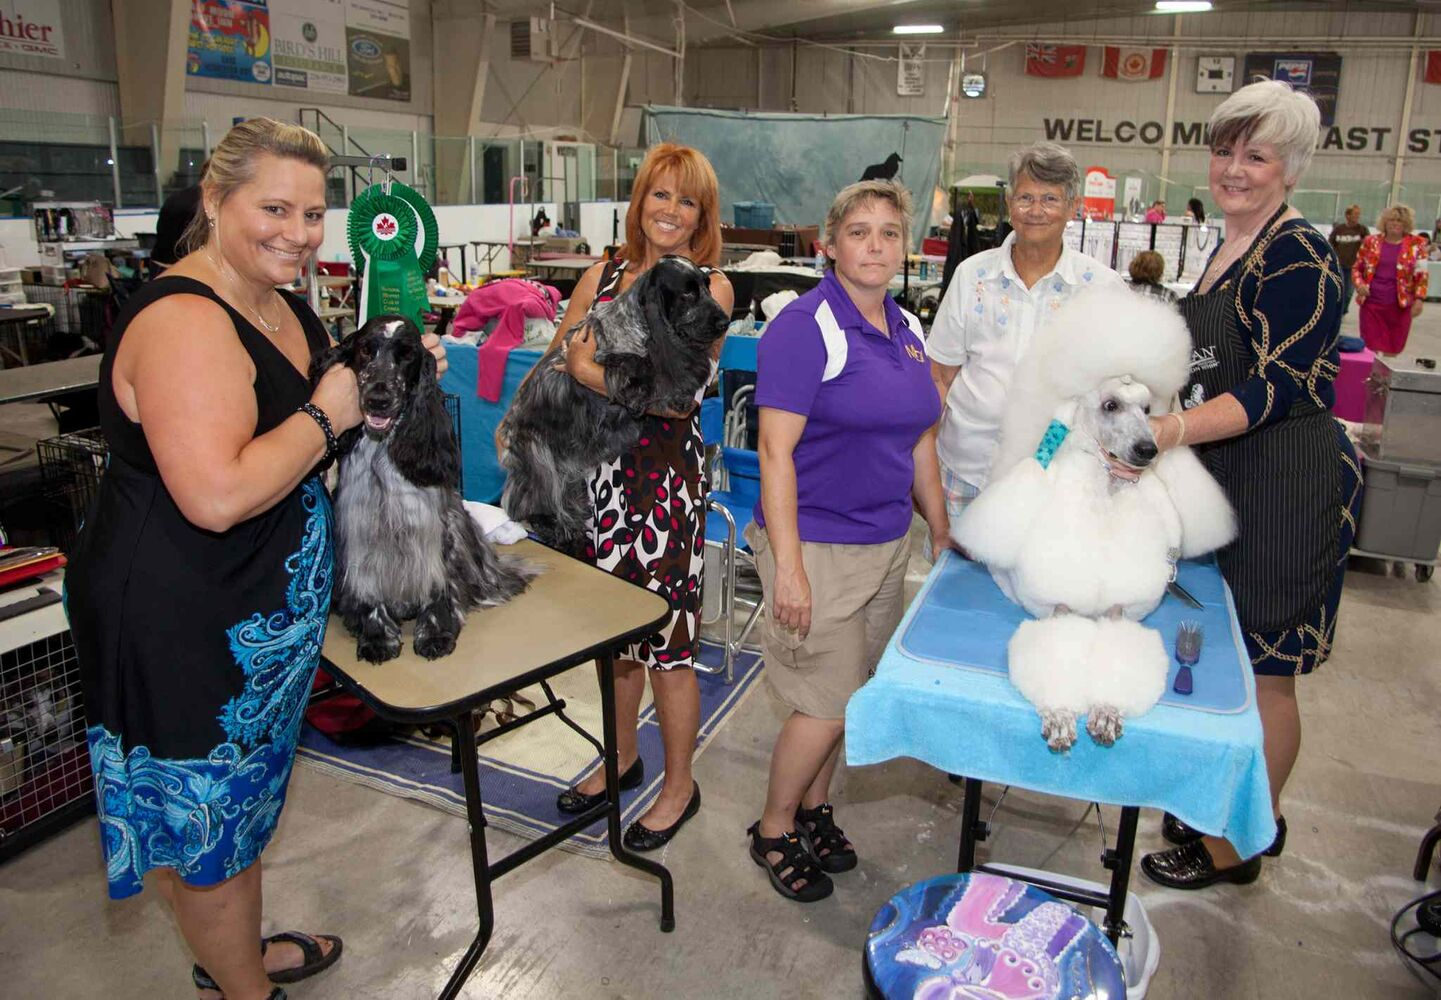 The 40th annual Manitoba Canine Association (MCA) show runs Aug. 13 to Aug. 16 at the East St. Paul Community Centre. This year's show is a memorial for David Markus, one of the founders of the MCA. The show features dogs of all breeds from across North America and overseas. Some of the proceeds from this year's event will go toward buying a vest for a local police dog. Pictured, from left, are Tracy Comberbach with Jagger, Maureen Hepples with Joey, Jill Fraser (MCA president), Harriett Lee (an event judge from Virginia) and Leanne MacIver with MacBeth, on Aug. 14, 2015. (JOHN JOHNSTON / WINNIPEG FREE PRESS)